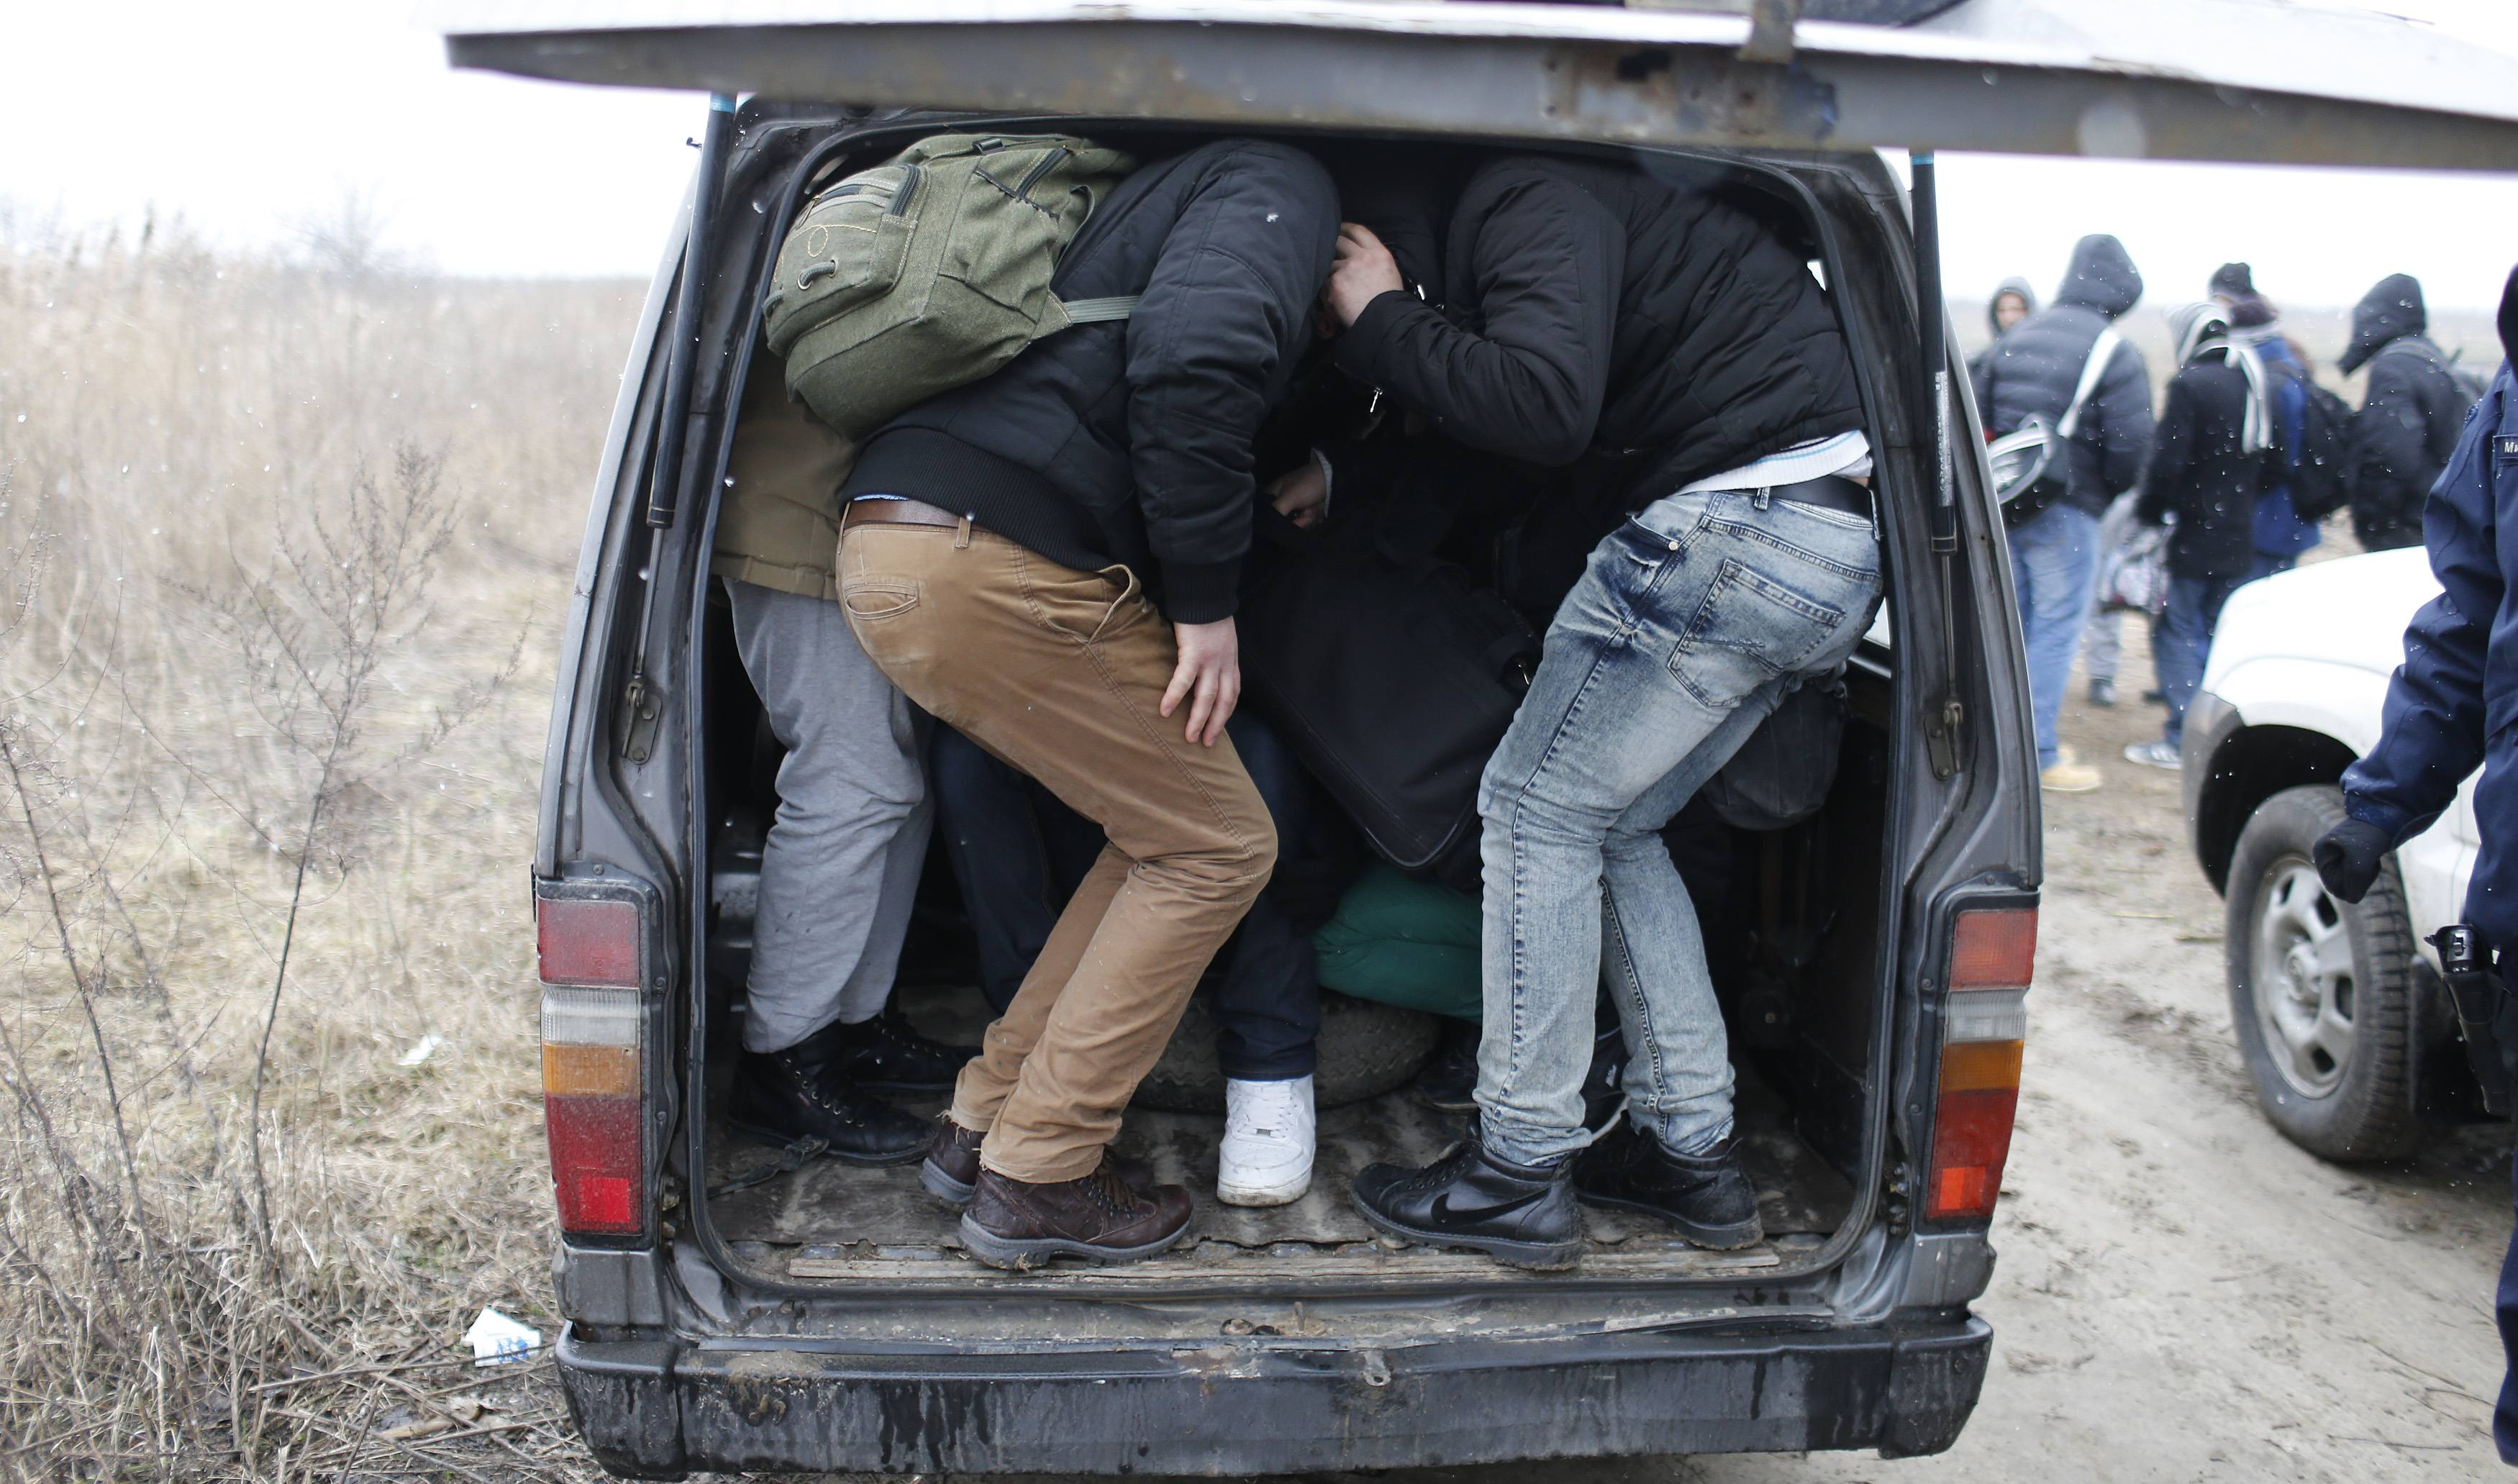 Kosovars try to enter a Serbian border police vehicle after being detained while trying to cross the border to Hungary, near the town of Subotica, near the Serbian-Hungarian border, February 6, 2015. The European Union is experiencing a steep rise in the number of Kosovo citizens smuggling themselves into the affluent bloc, with 10,000 filing for asylum in Hungary in just one month this year compared to 6,000 for the whole of 2013. It follows a relaxation of travel rules allowing Kosovars to reach EU borders via Serbia and has coincided with political turmoil and street unrest in Kosovo fuelled by poverty, high unemployment and economically debilitating corruption. REUTERS/Marko Djurica (SERBIA - Tags: SOCIETY IMMIGRATION POLITICS)